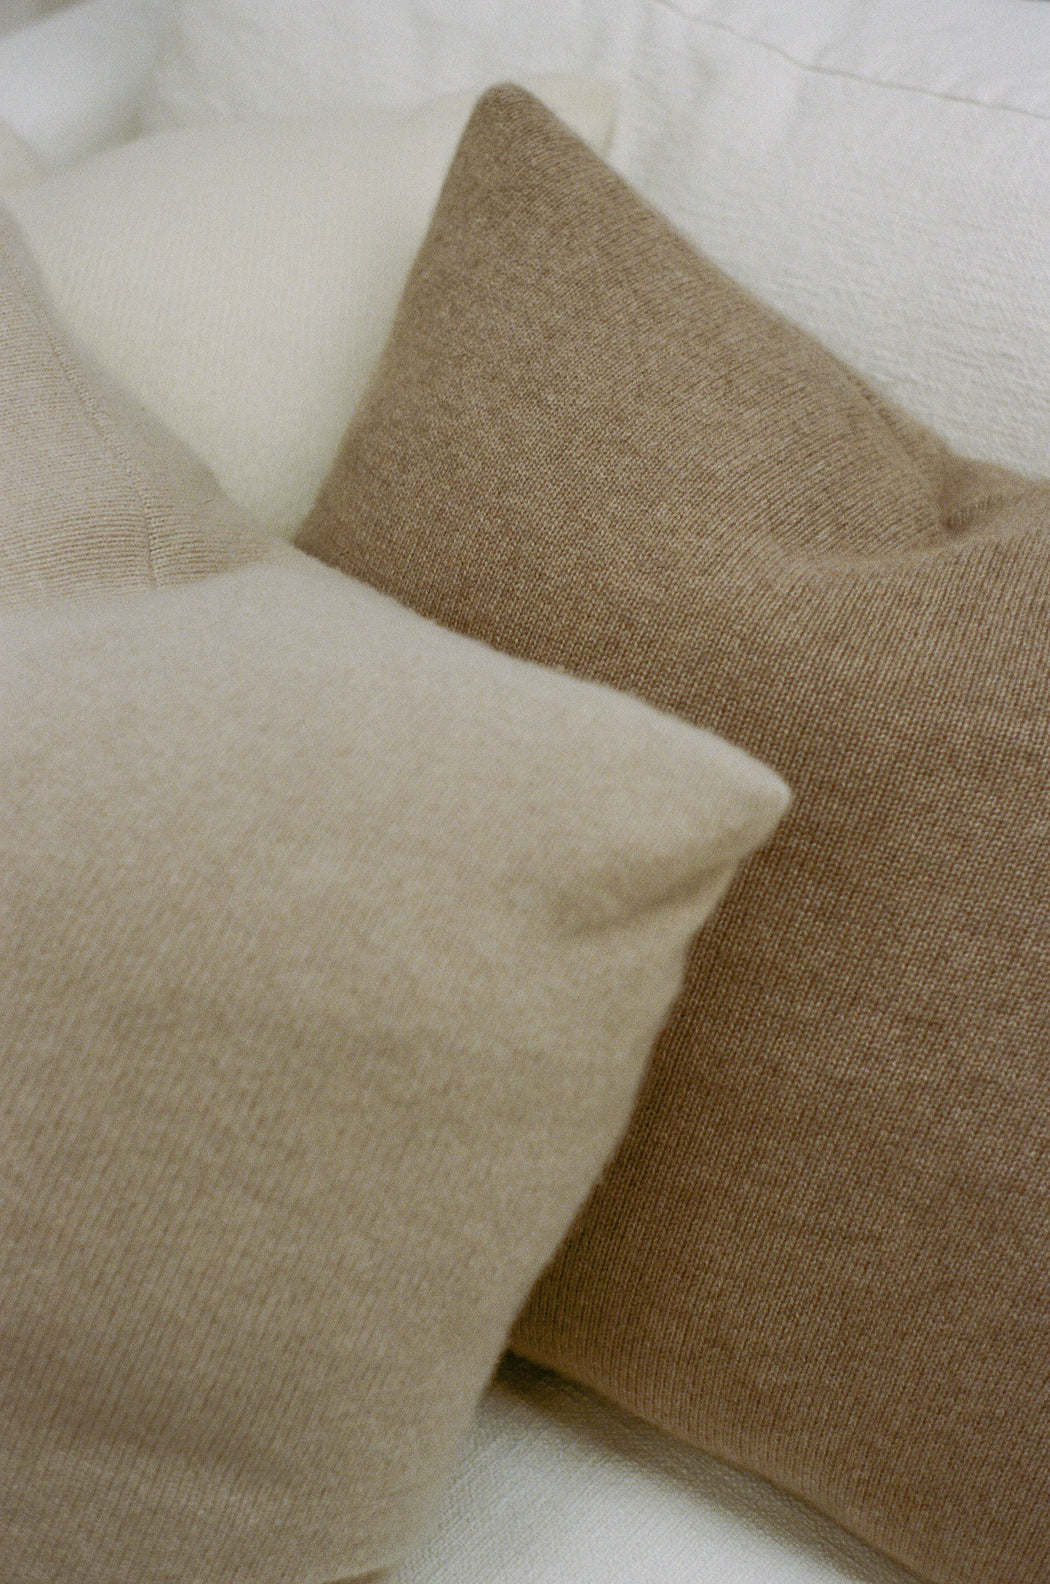 Italian Cashmere Jersey Knit Down Pillow - Oat